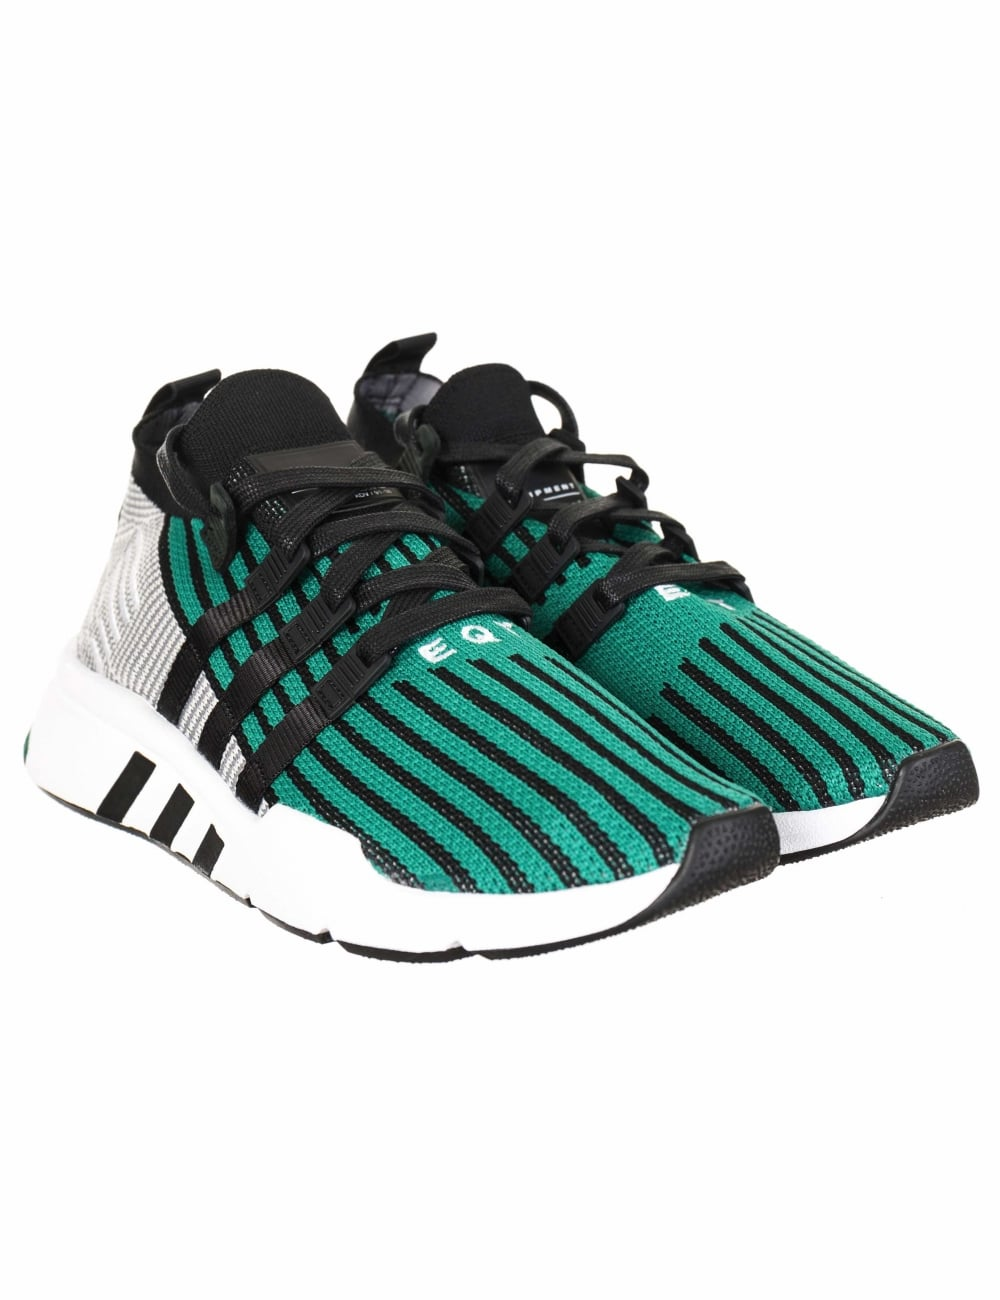 online store f8c5d 4c412 EQT Support Mid ADV Primeknit Shoes - Core BlackSub Green